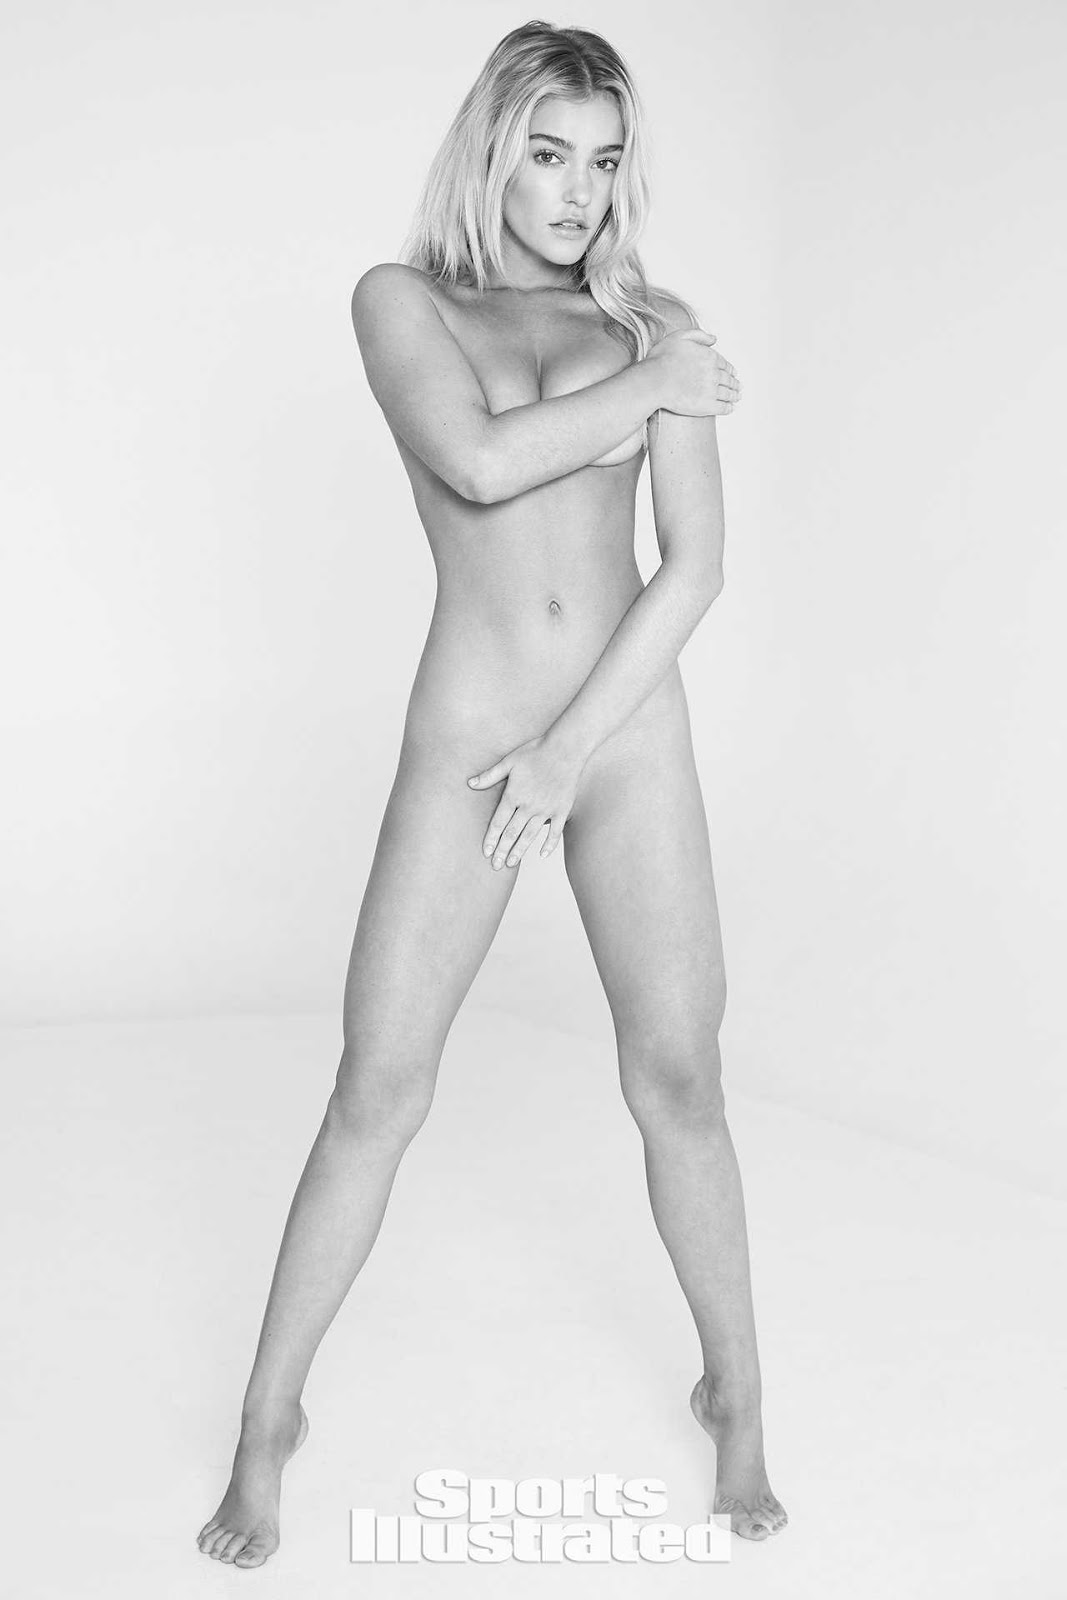 Sharone stone naked posed #9